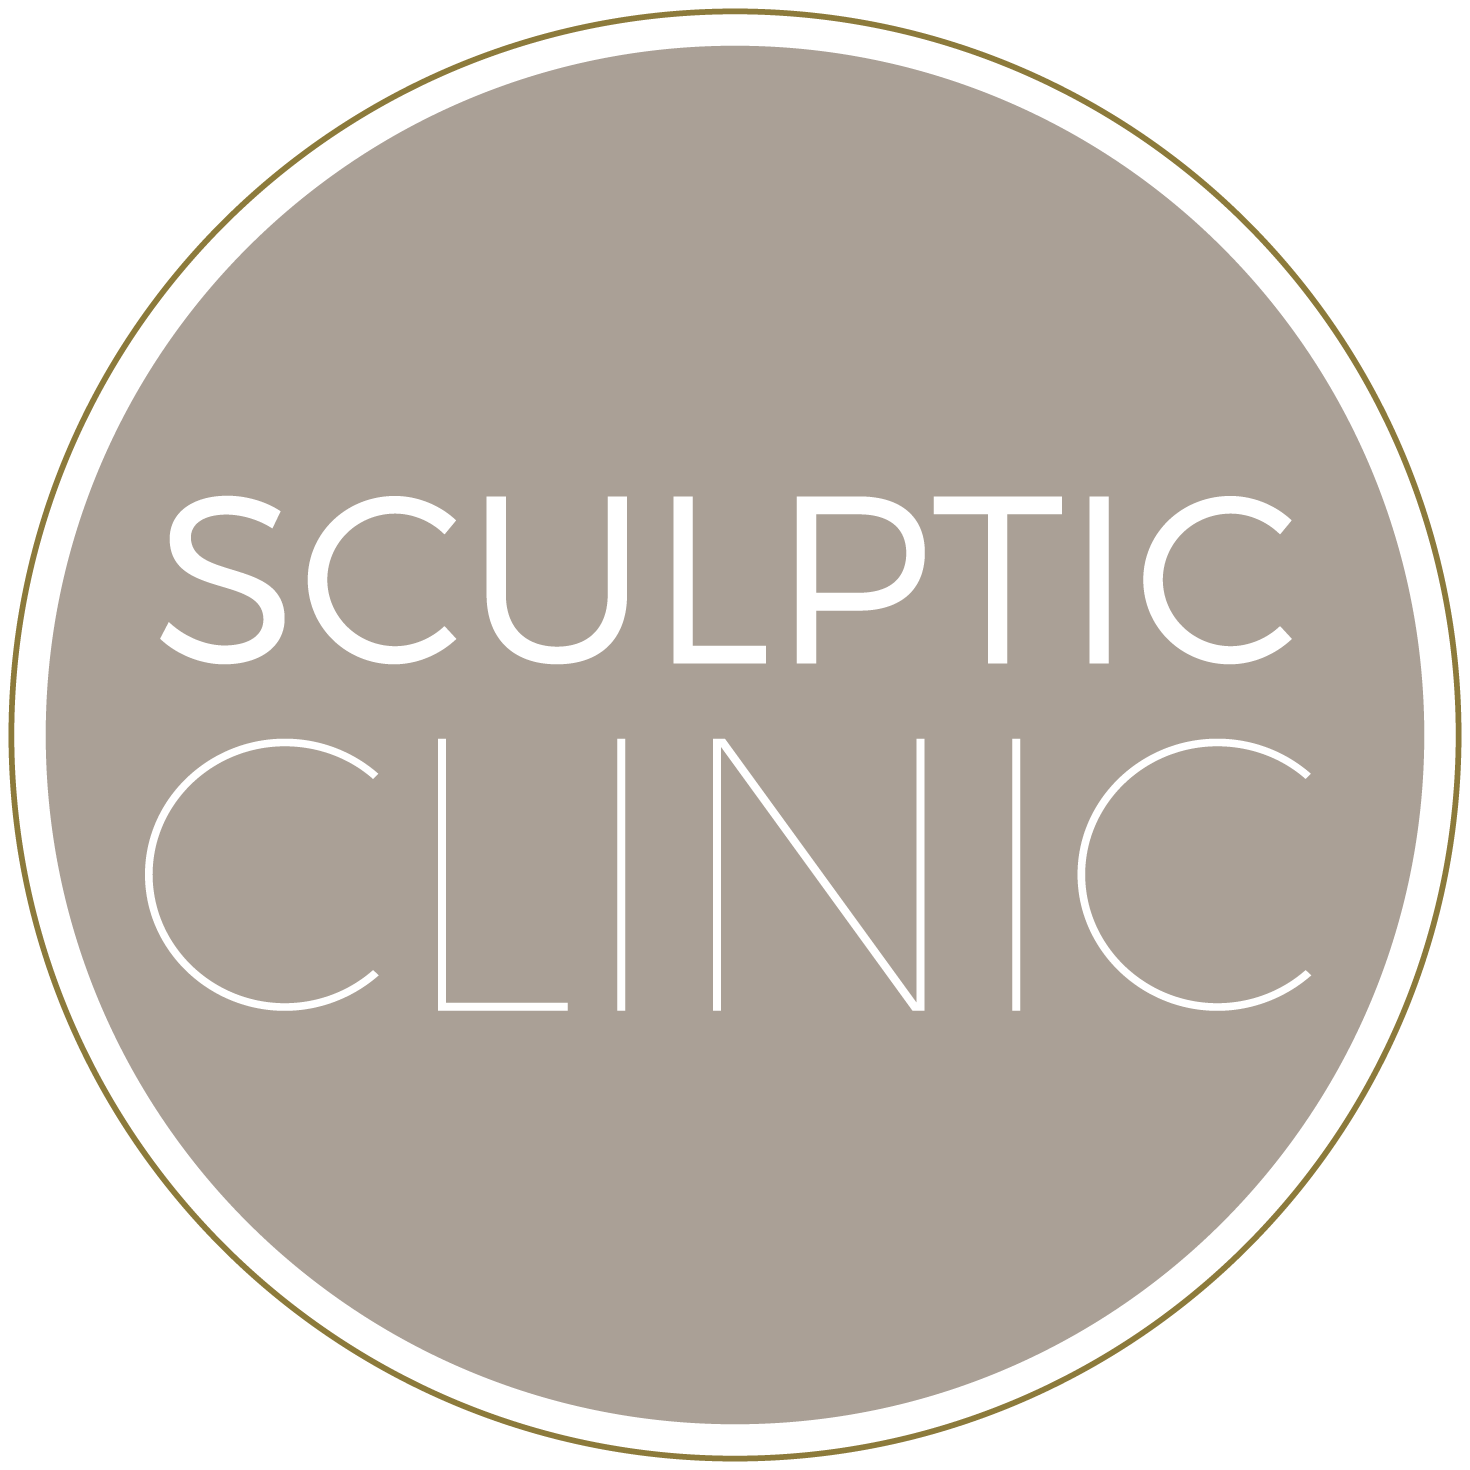 Sculptic Clinic